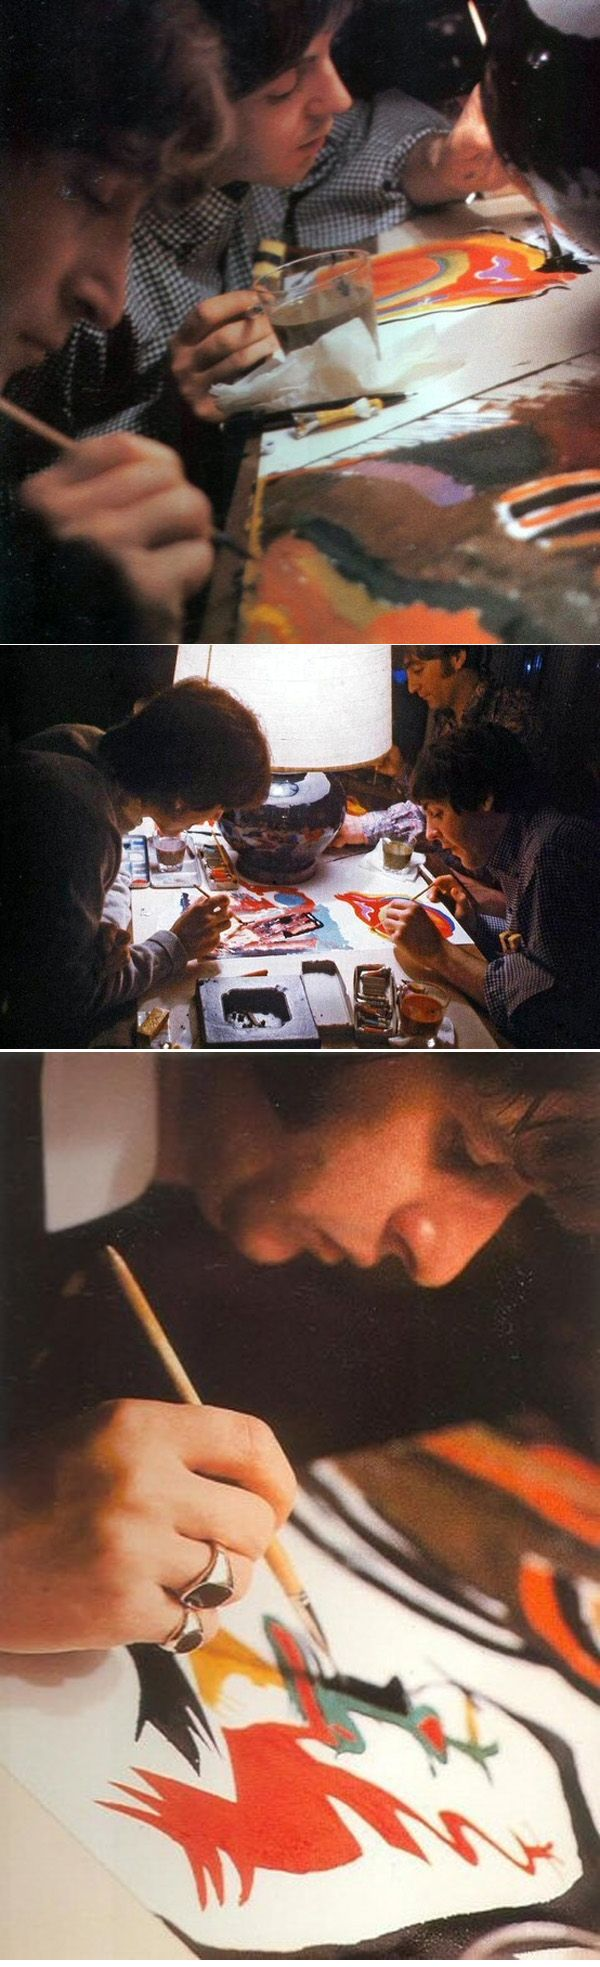 The Beatles, painting together in Japan, when they were barricaded in the hotel and the Japanese officials wouldn't let them out